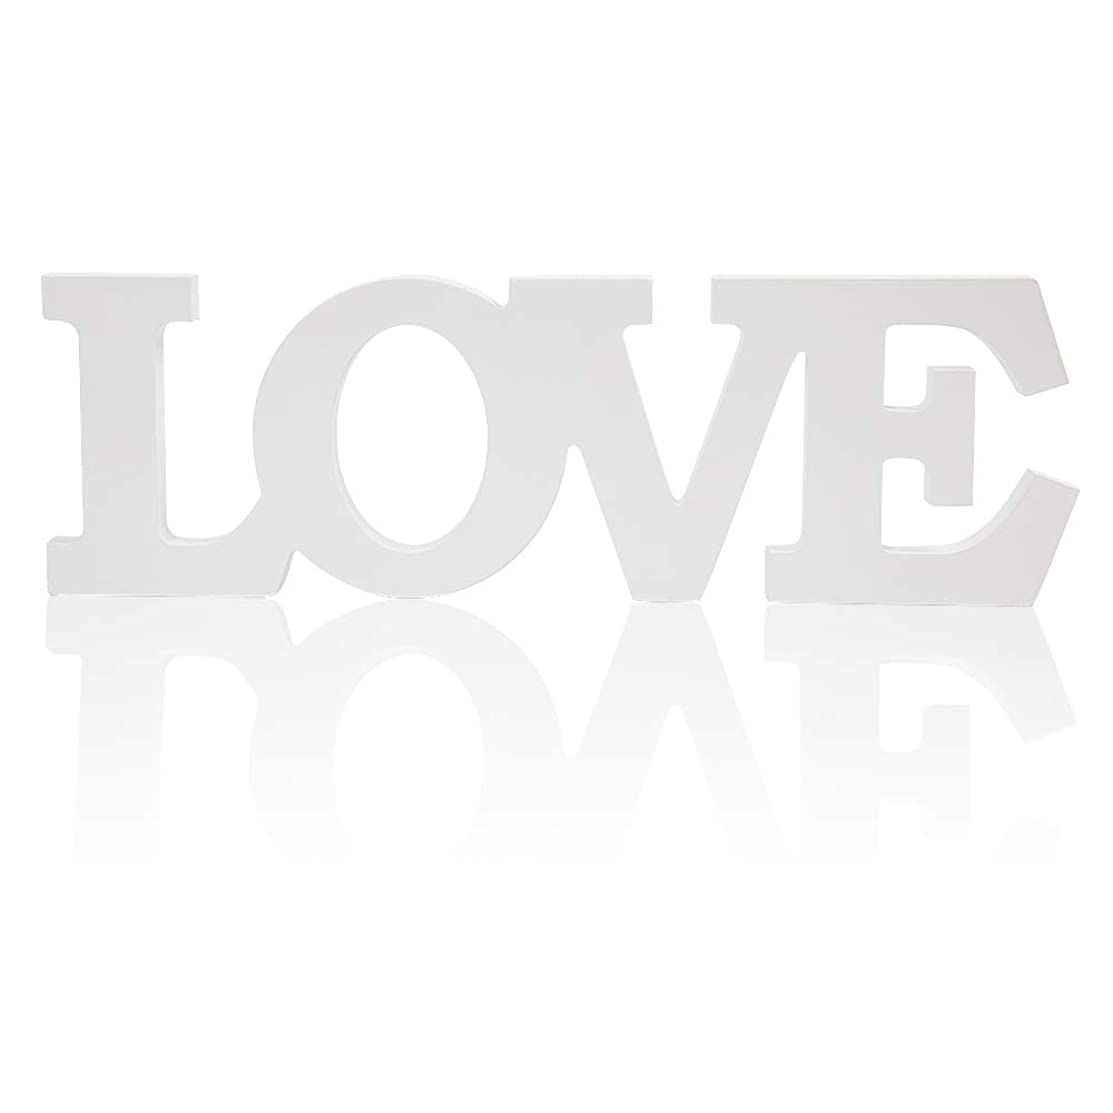 senover Love Sign Wedding Sweetheart Table Decorations,Love Letters Decorative Letters for Wedding Photo Props Party Banner Decoration,Wedding Shower Gift (White Love Large)